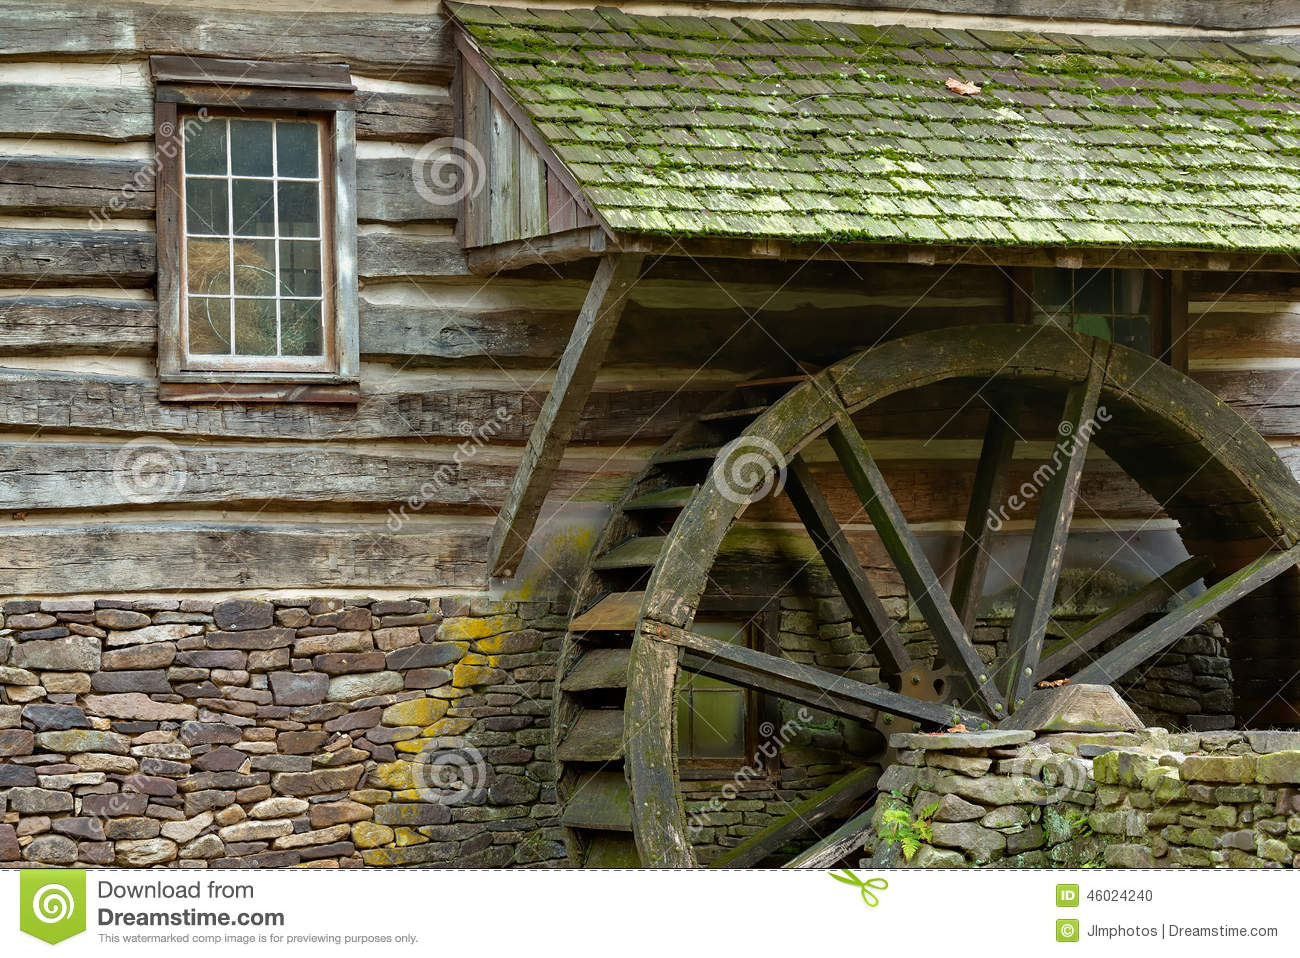 Wooden water paddle wheel and mossy stones on the side of a old